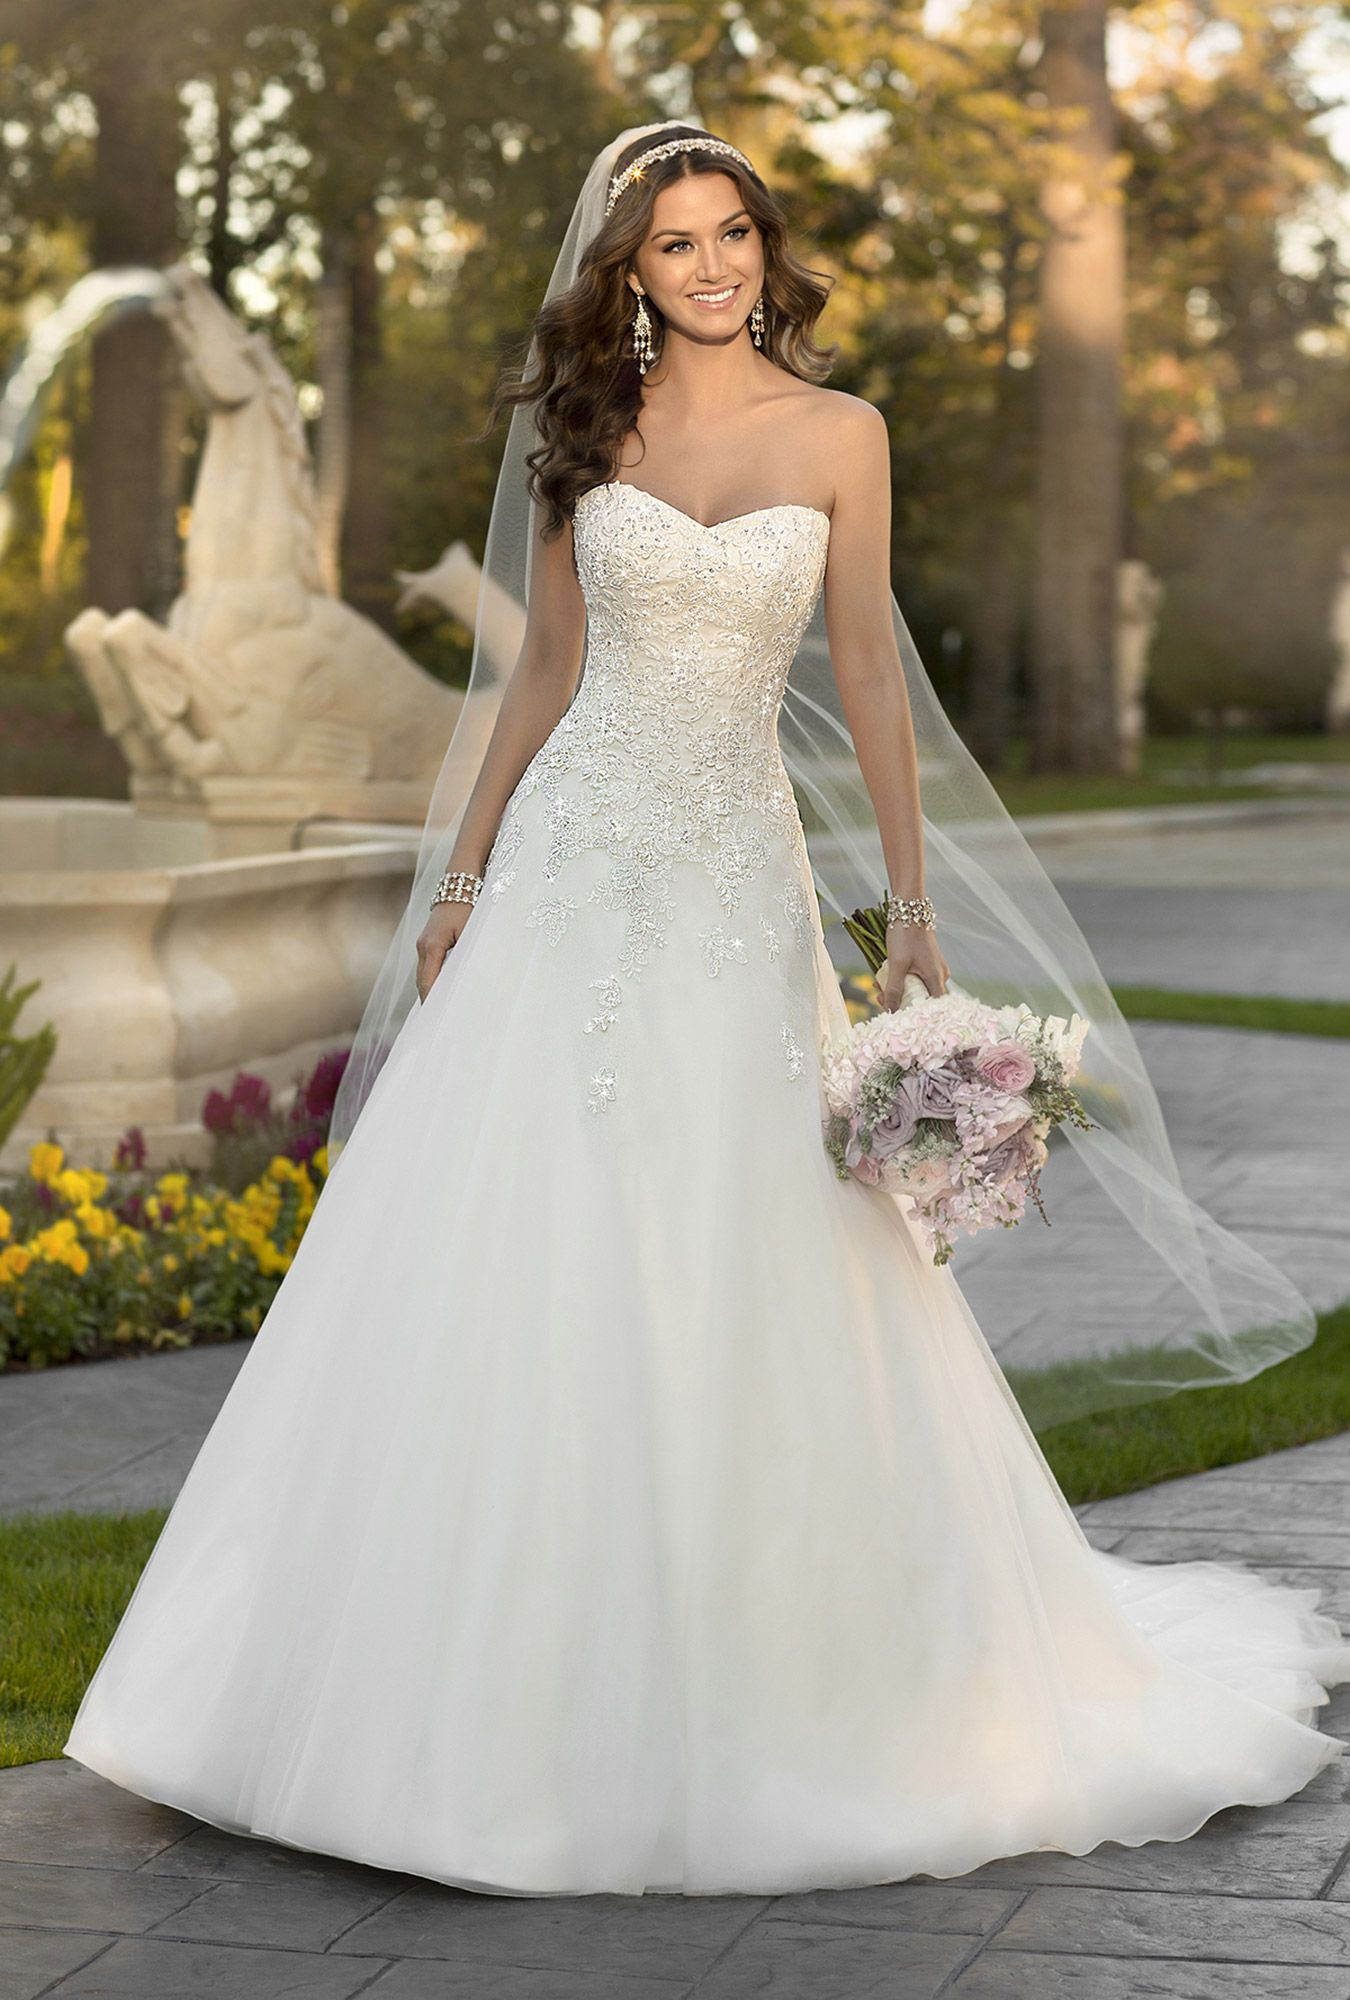 Introducing Stella York by Ella Bridals, a new collection